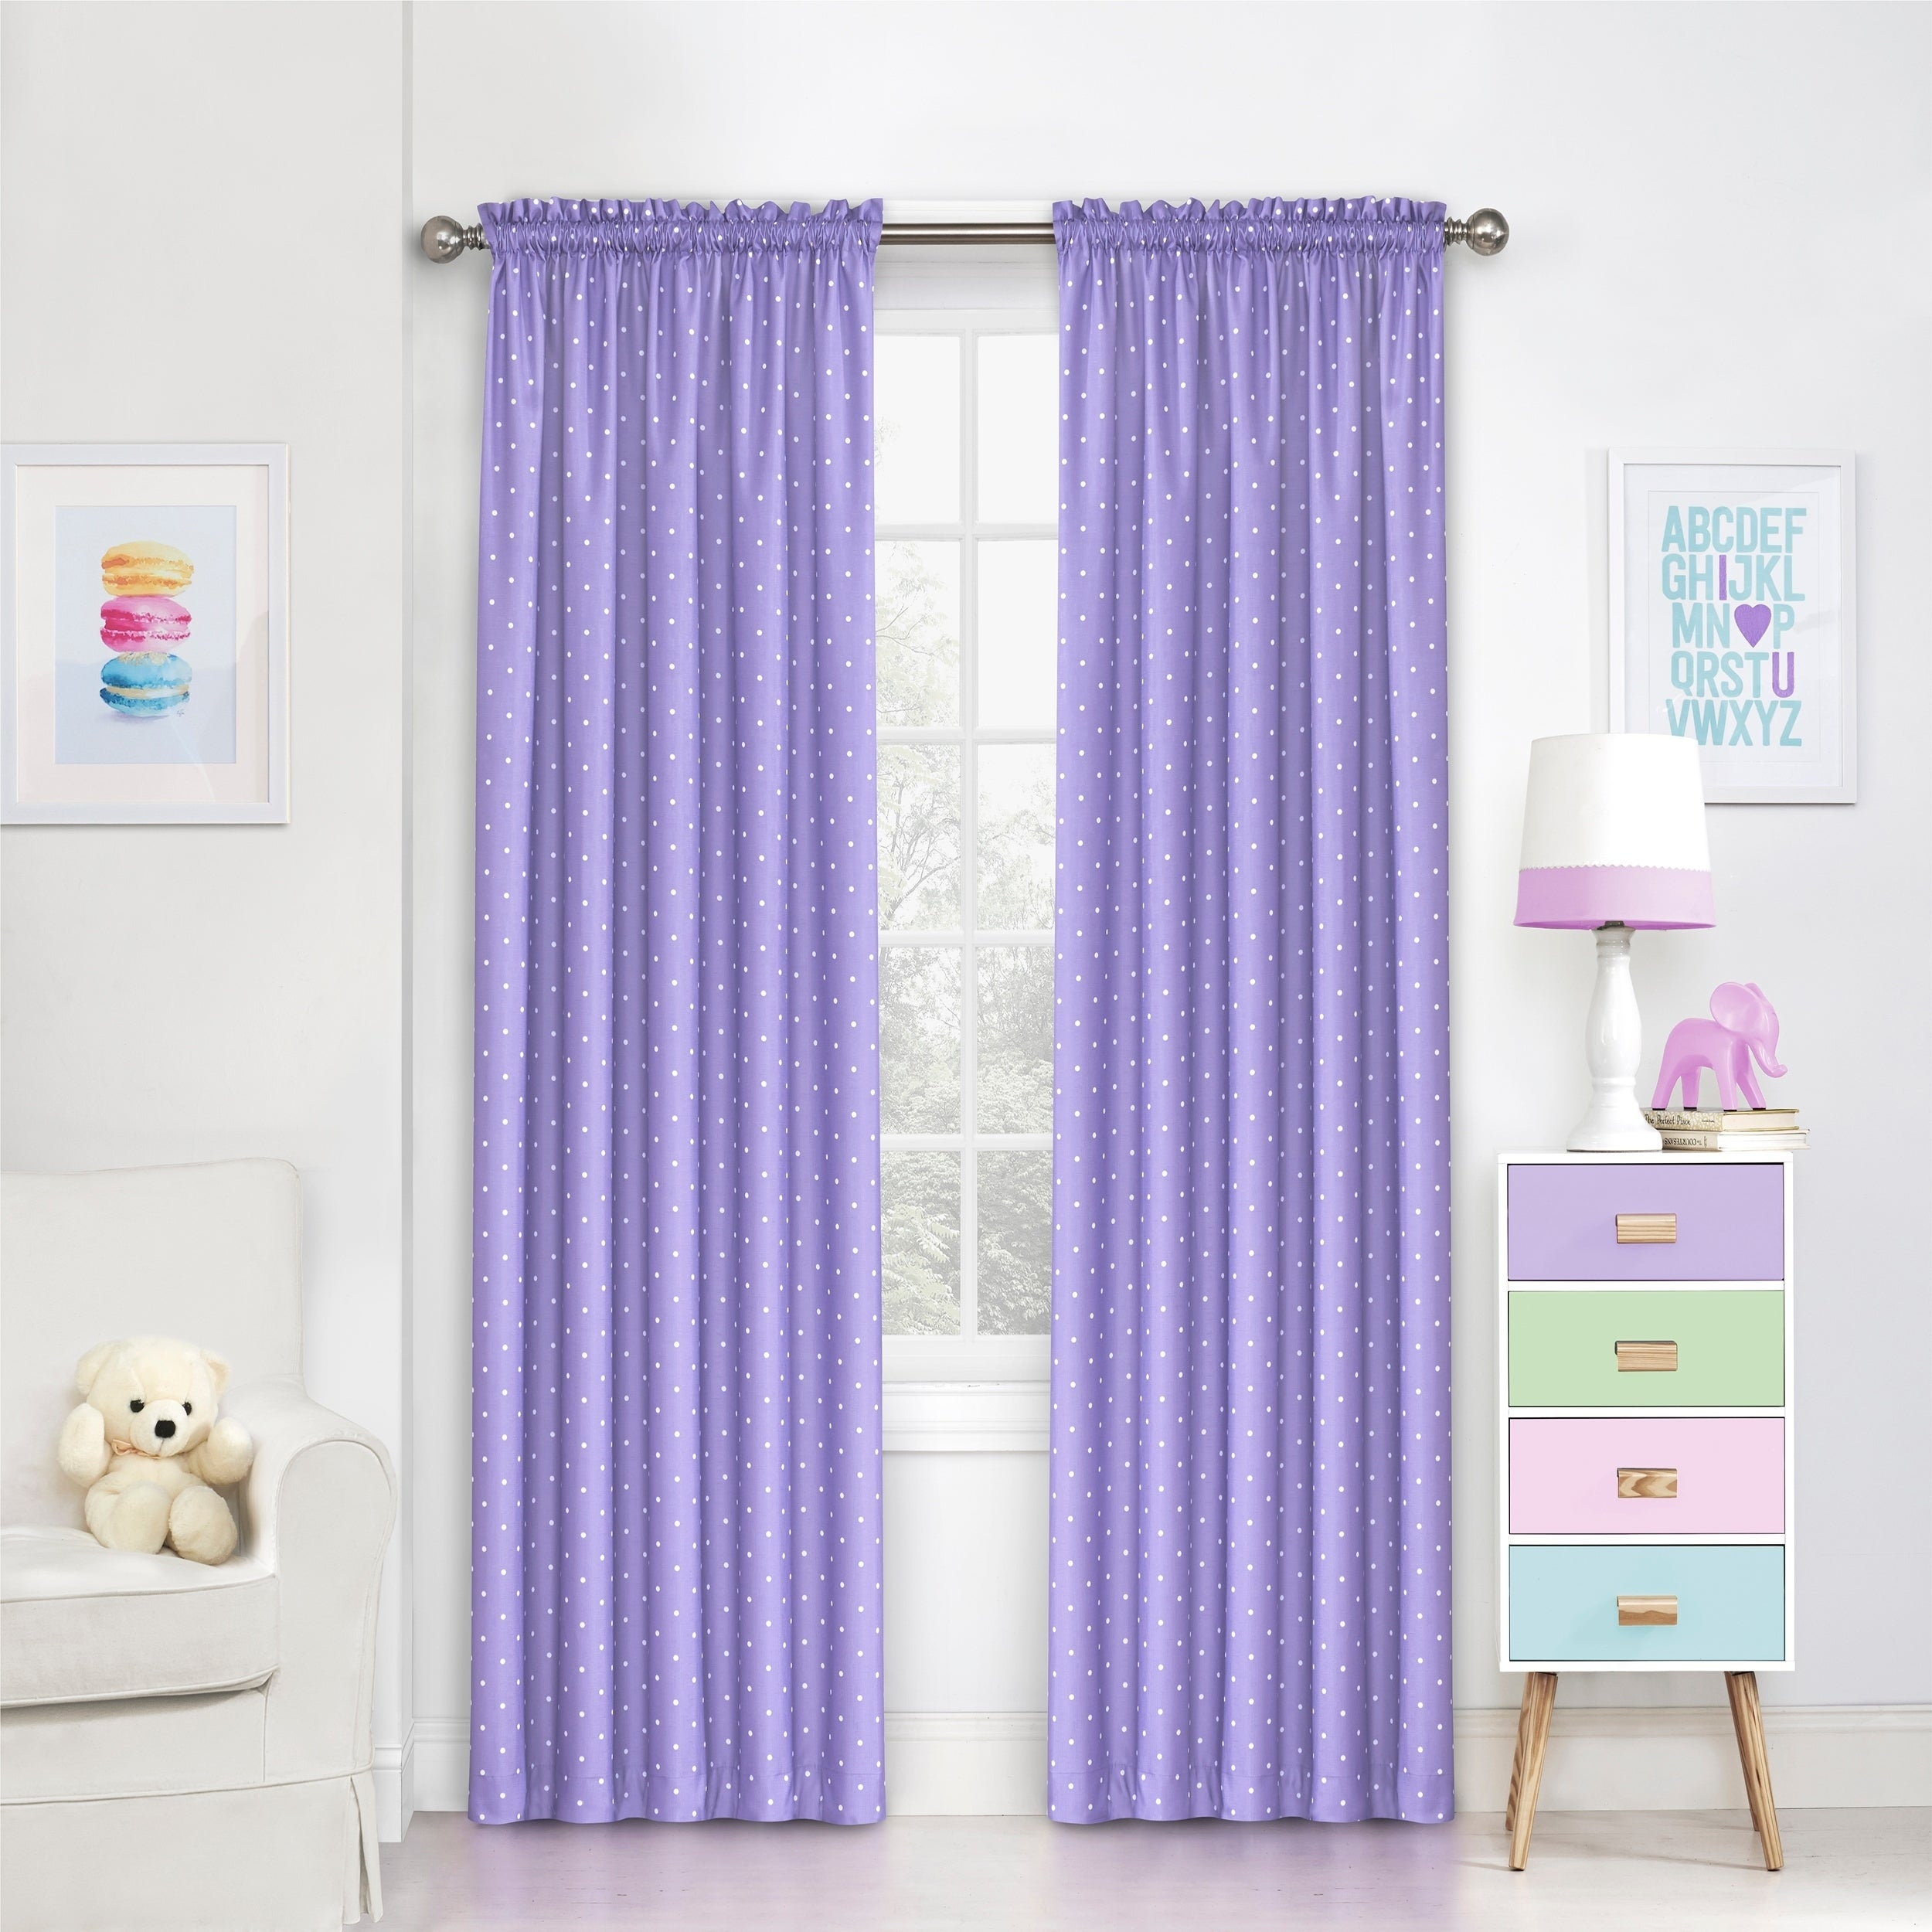 Eclipse Kids Polka Dots Room Darkening Window Curtain Panel Pertaining To Elrene Aurora Kids Room Darkening Layered Sheer Curtains (View 8 of 20)